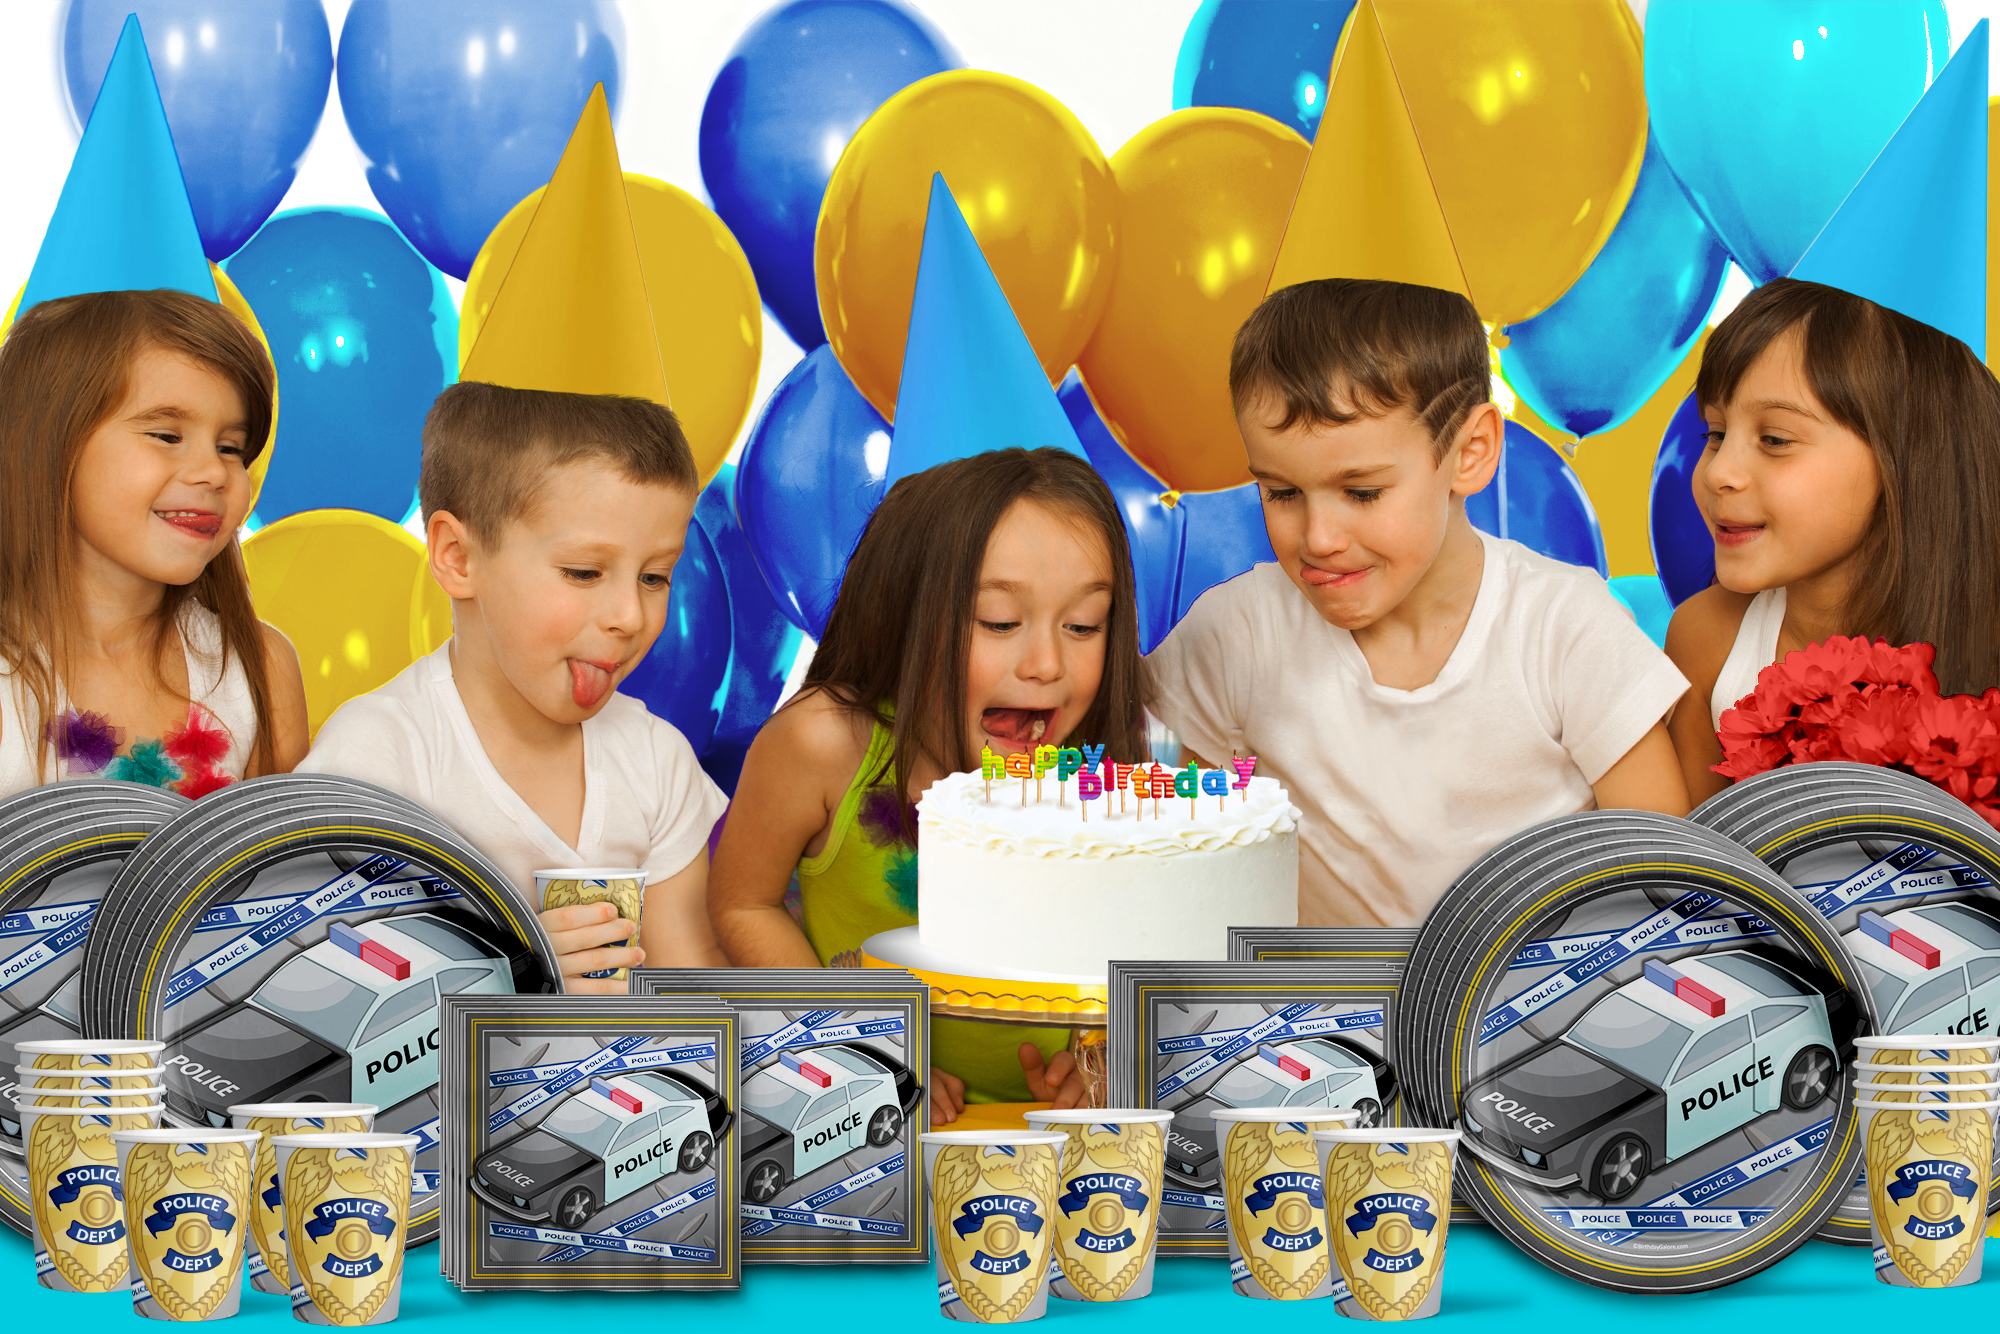 Police Cop Birthday Party Tableware Kit For 16 Guests - BirthdayGalore.com